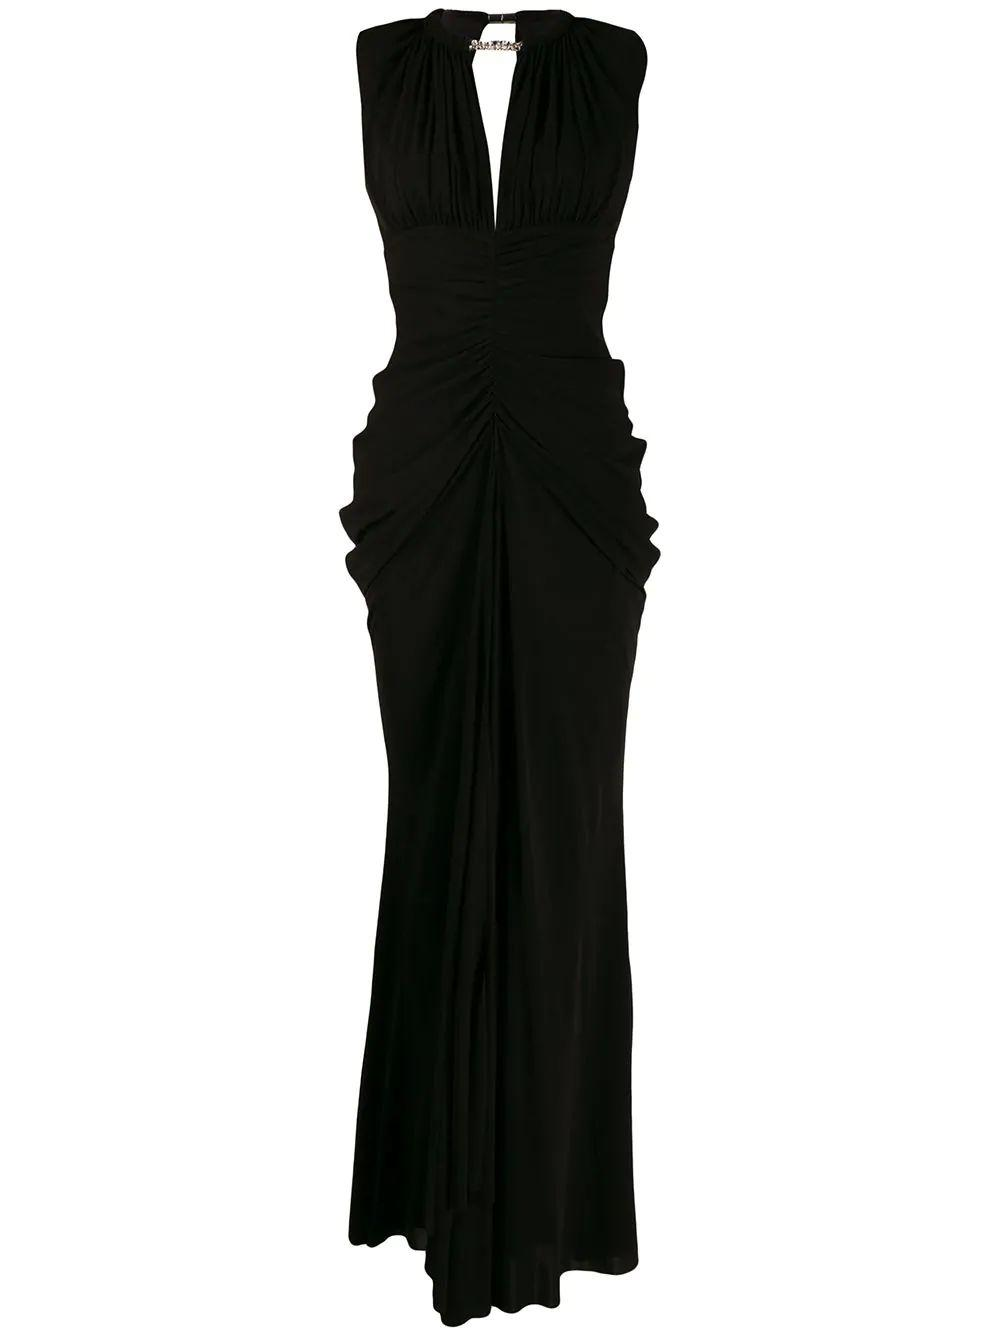 Sleeve Less Ruched Front Jersey Gown With Necklace Item # 577596-QLAAH